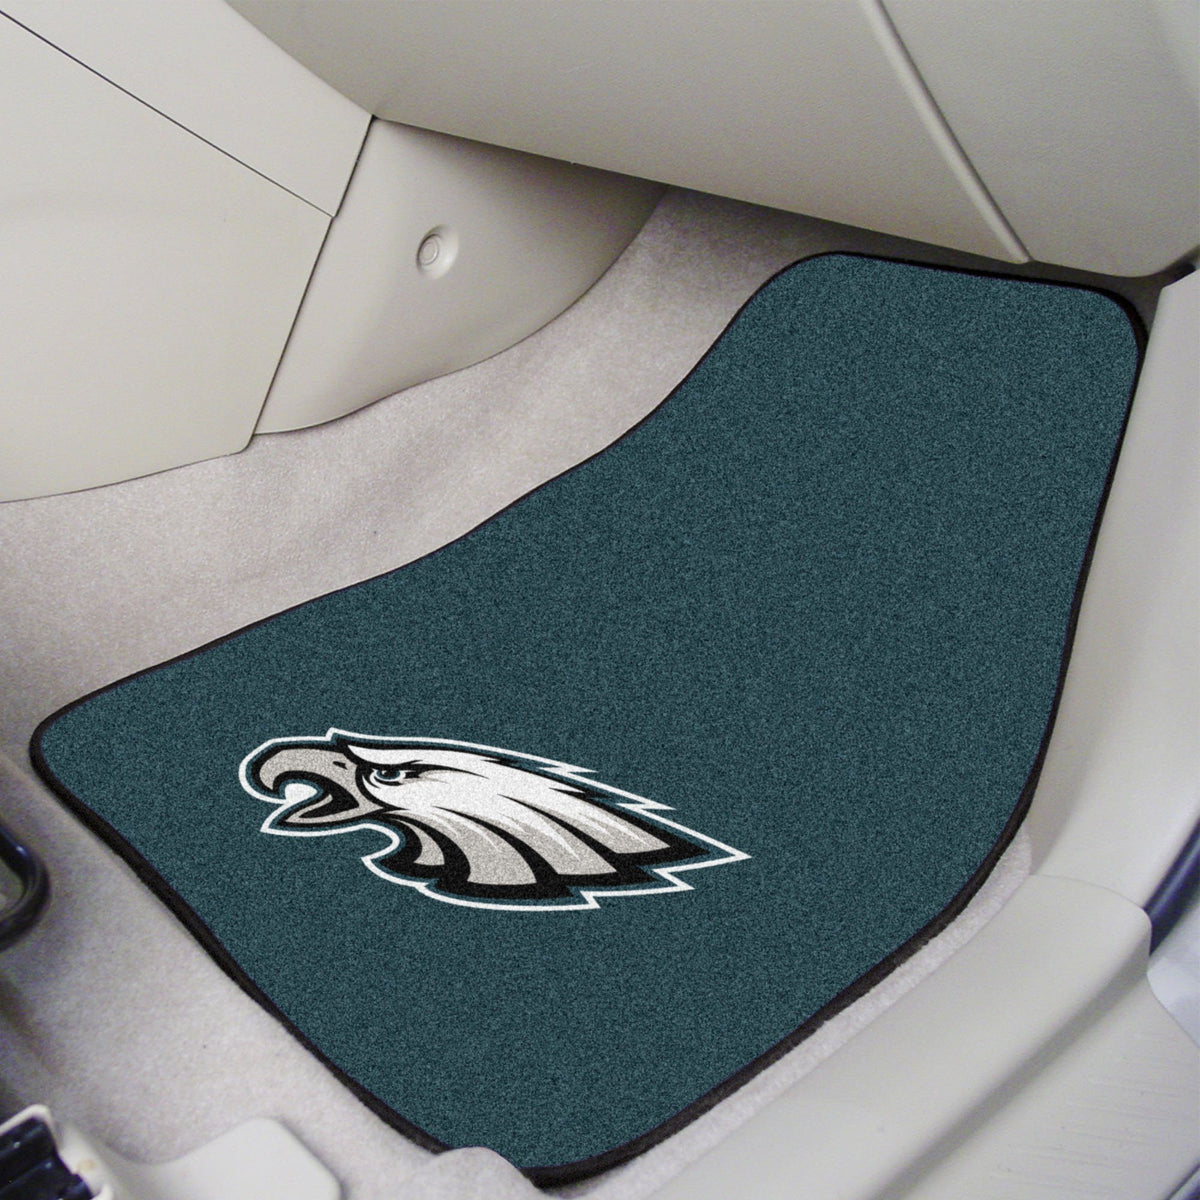 "NFL - 2-pc Carpet Car Mat Set, 17"" x 27"" NFL Mats, Front Car Mats, 2-pc Carpet Car Mat Set, NFL, Auto Fan Mats Philadelphia Eagles"